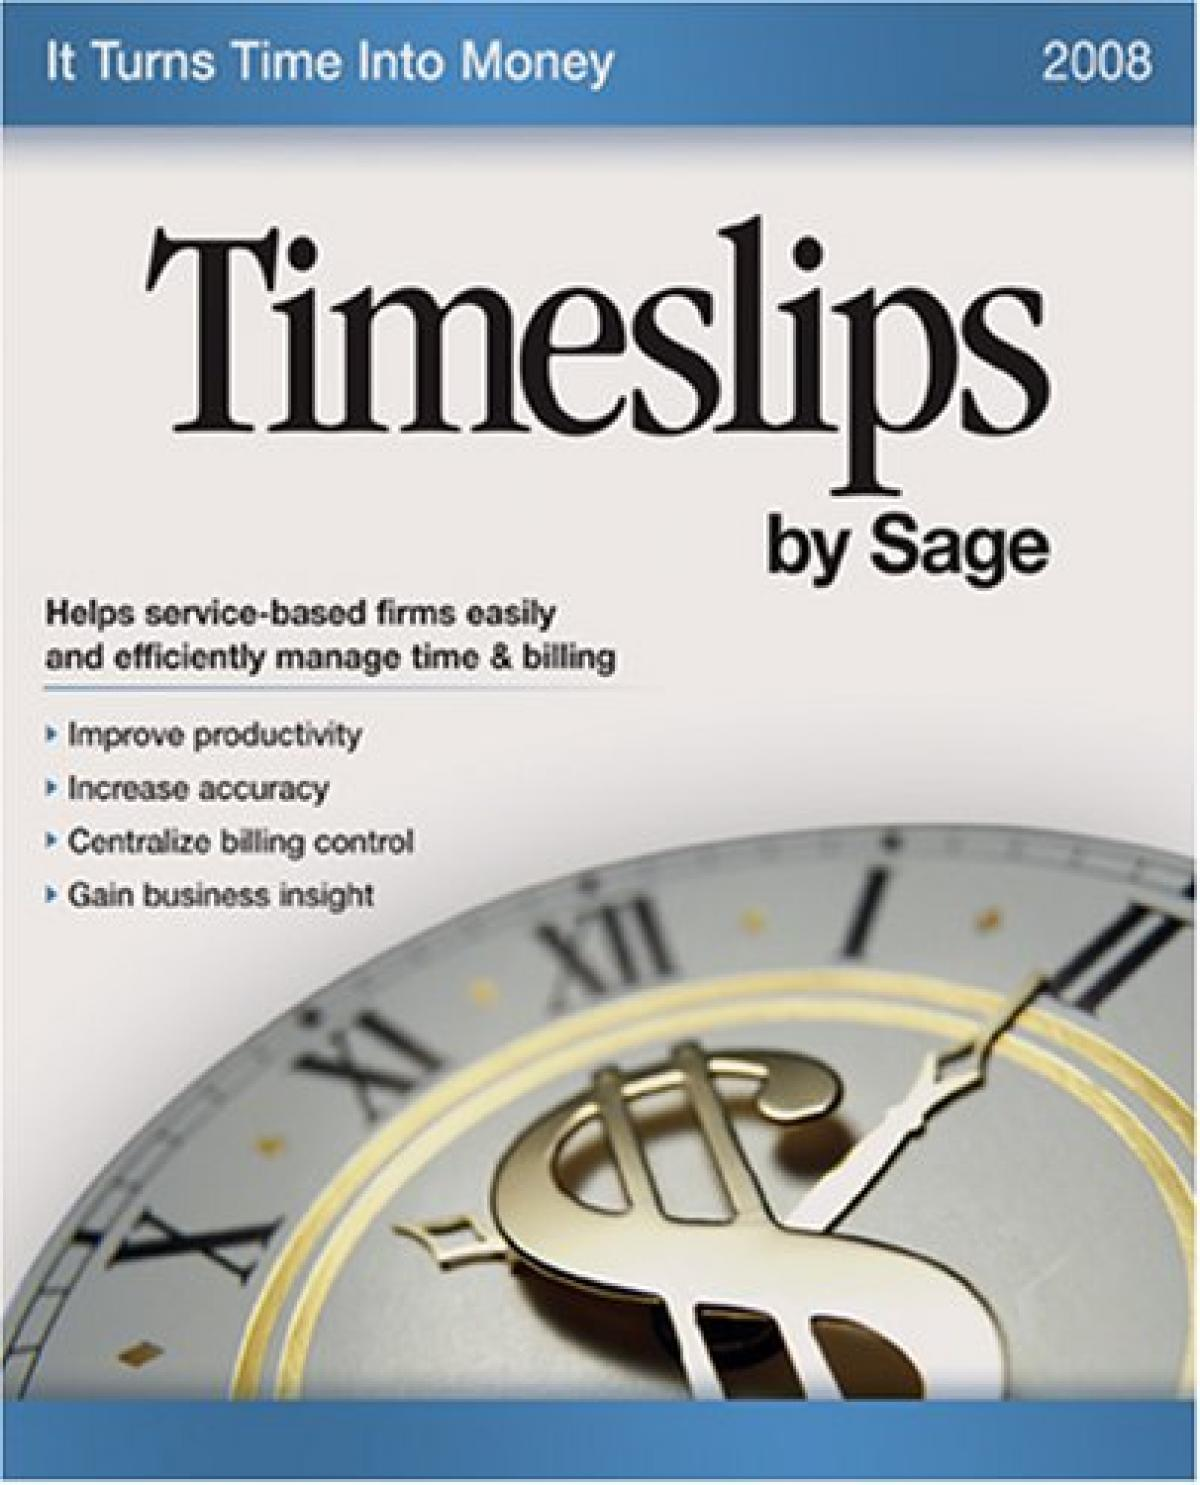 Sage Timeslips 2008 certified consultants offering Timeslips classes, support, and database repair.